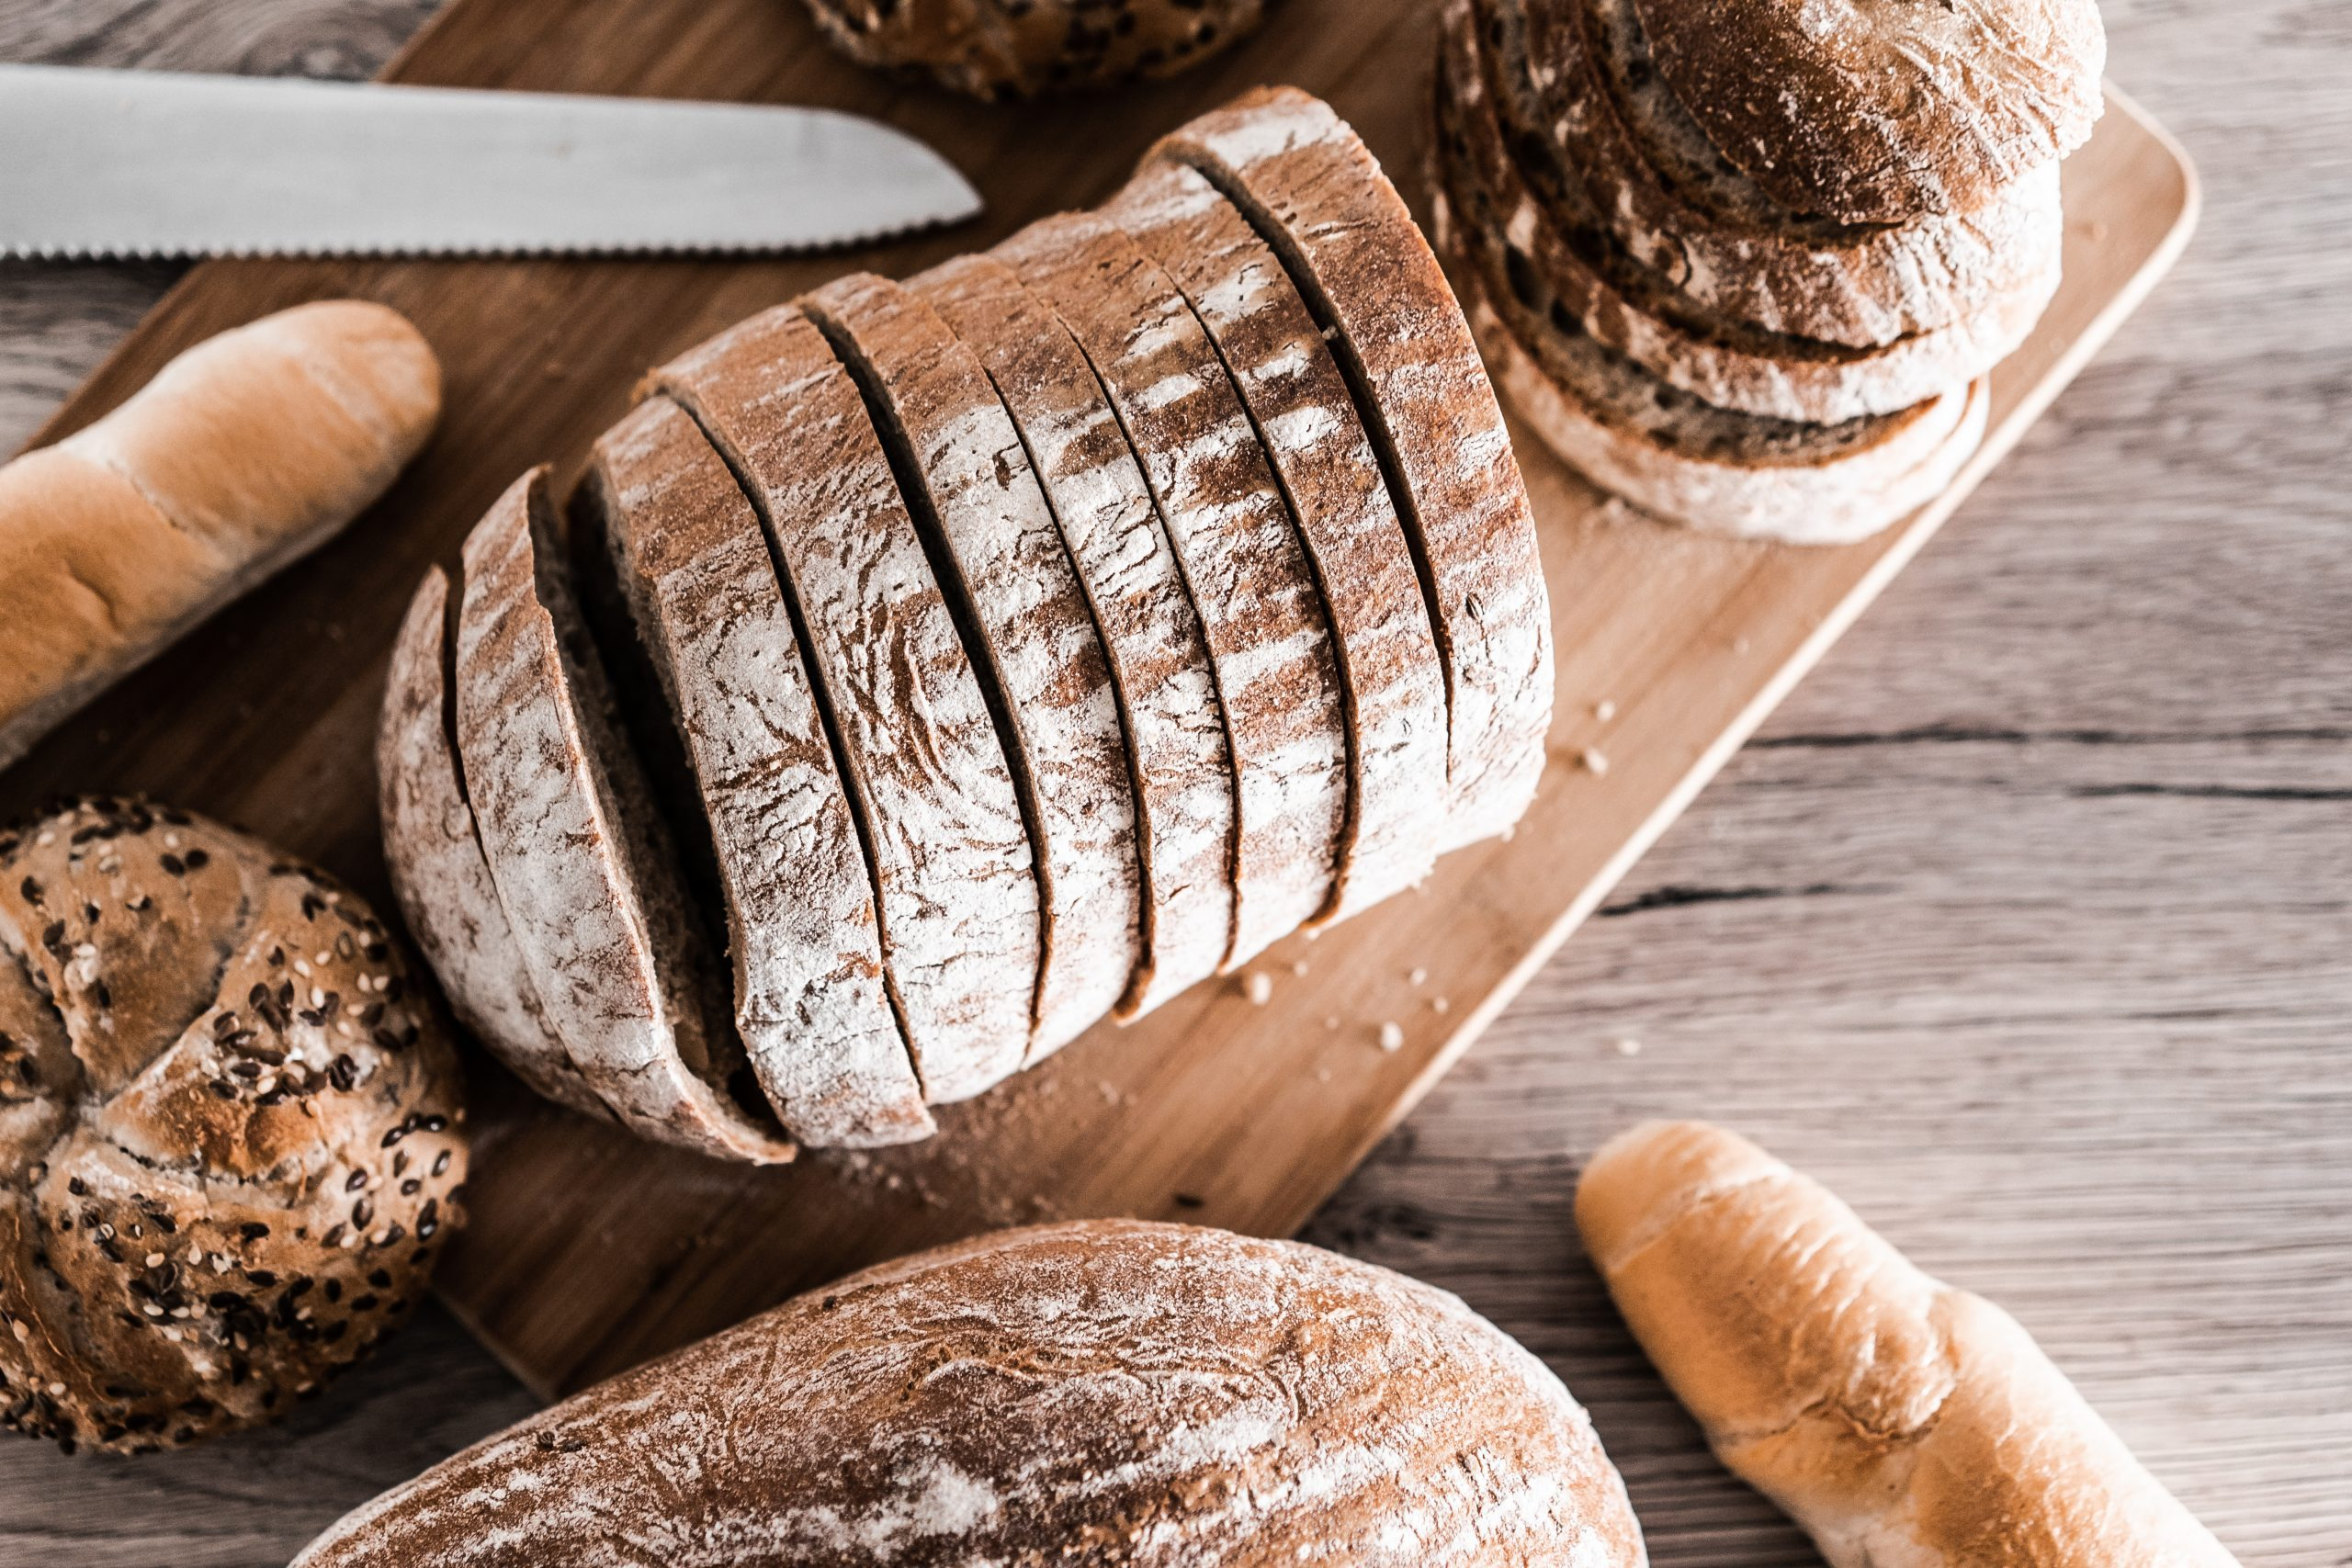 What type of insurance does my bakery need?